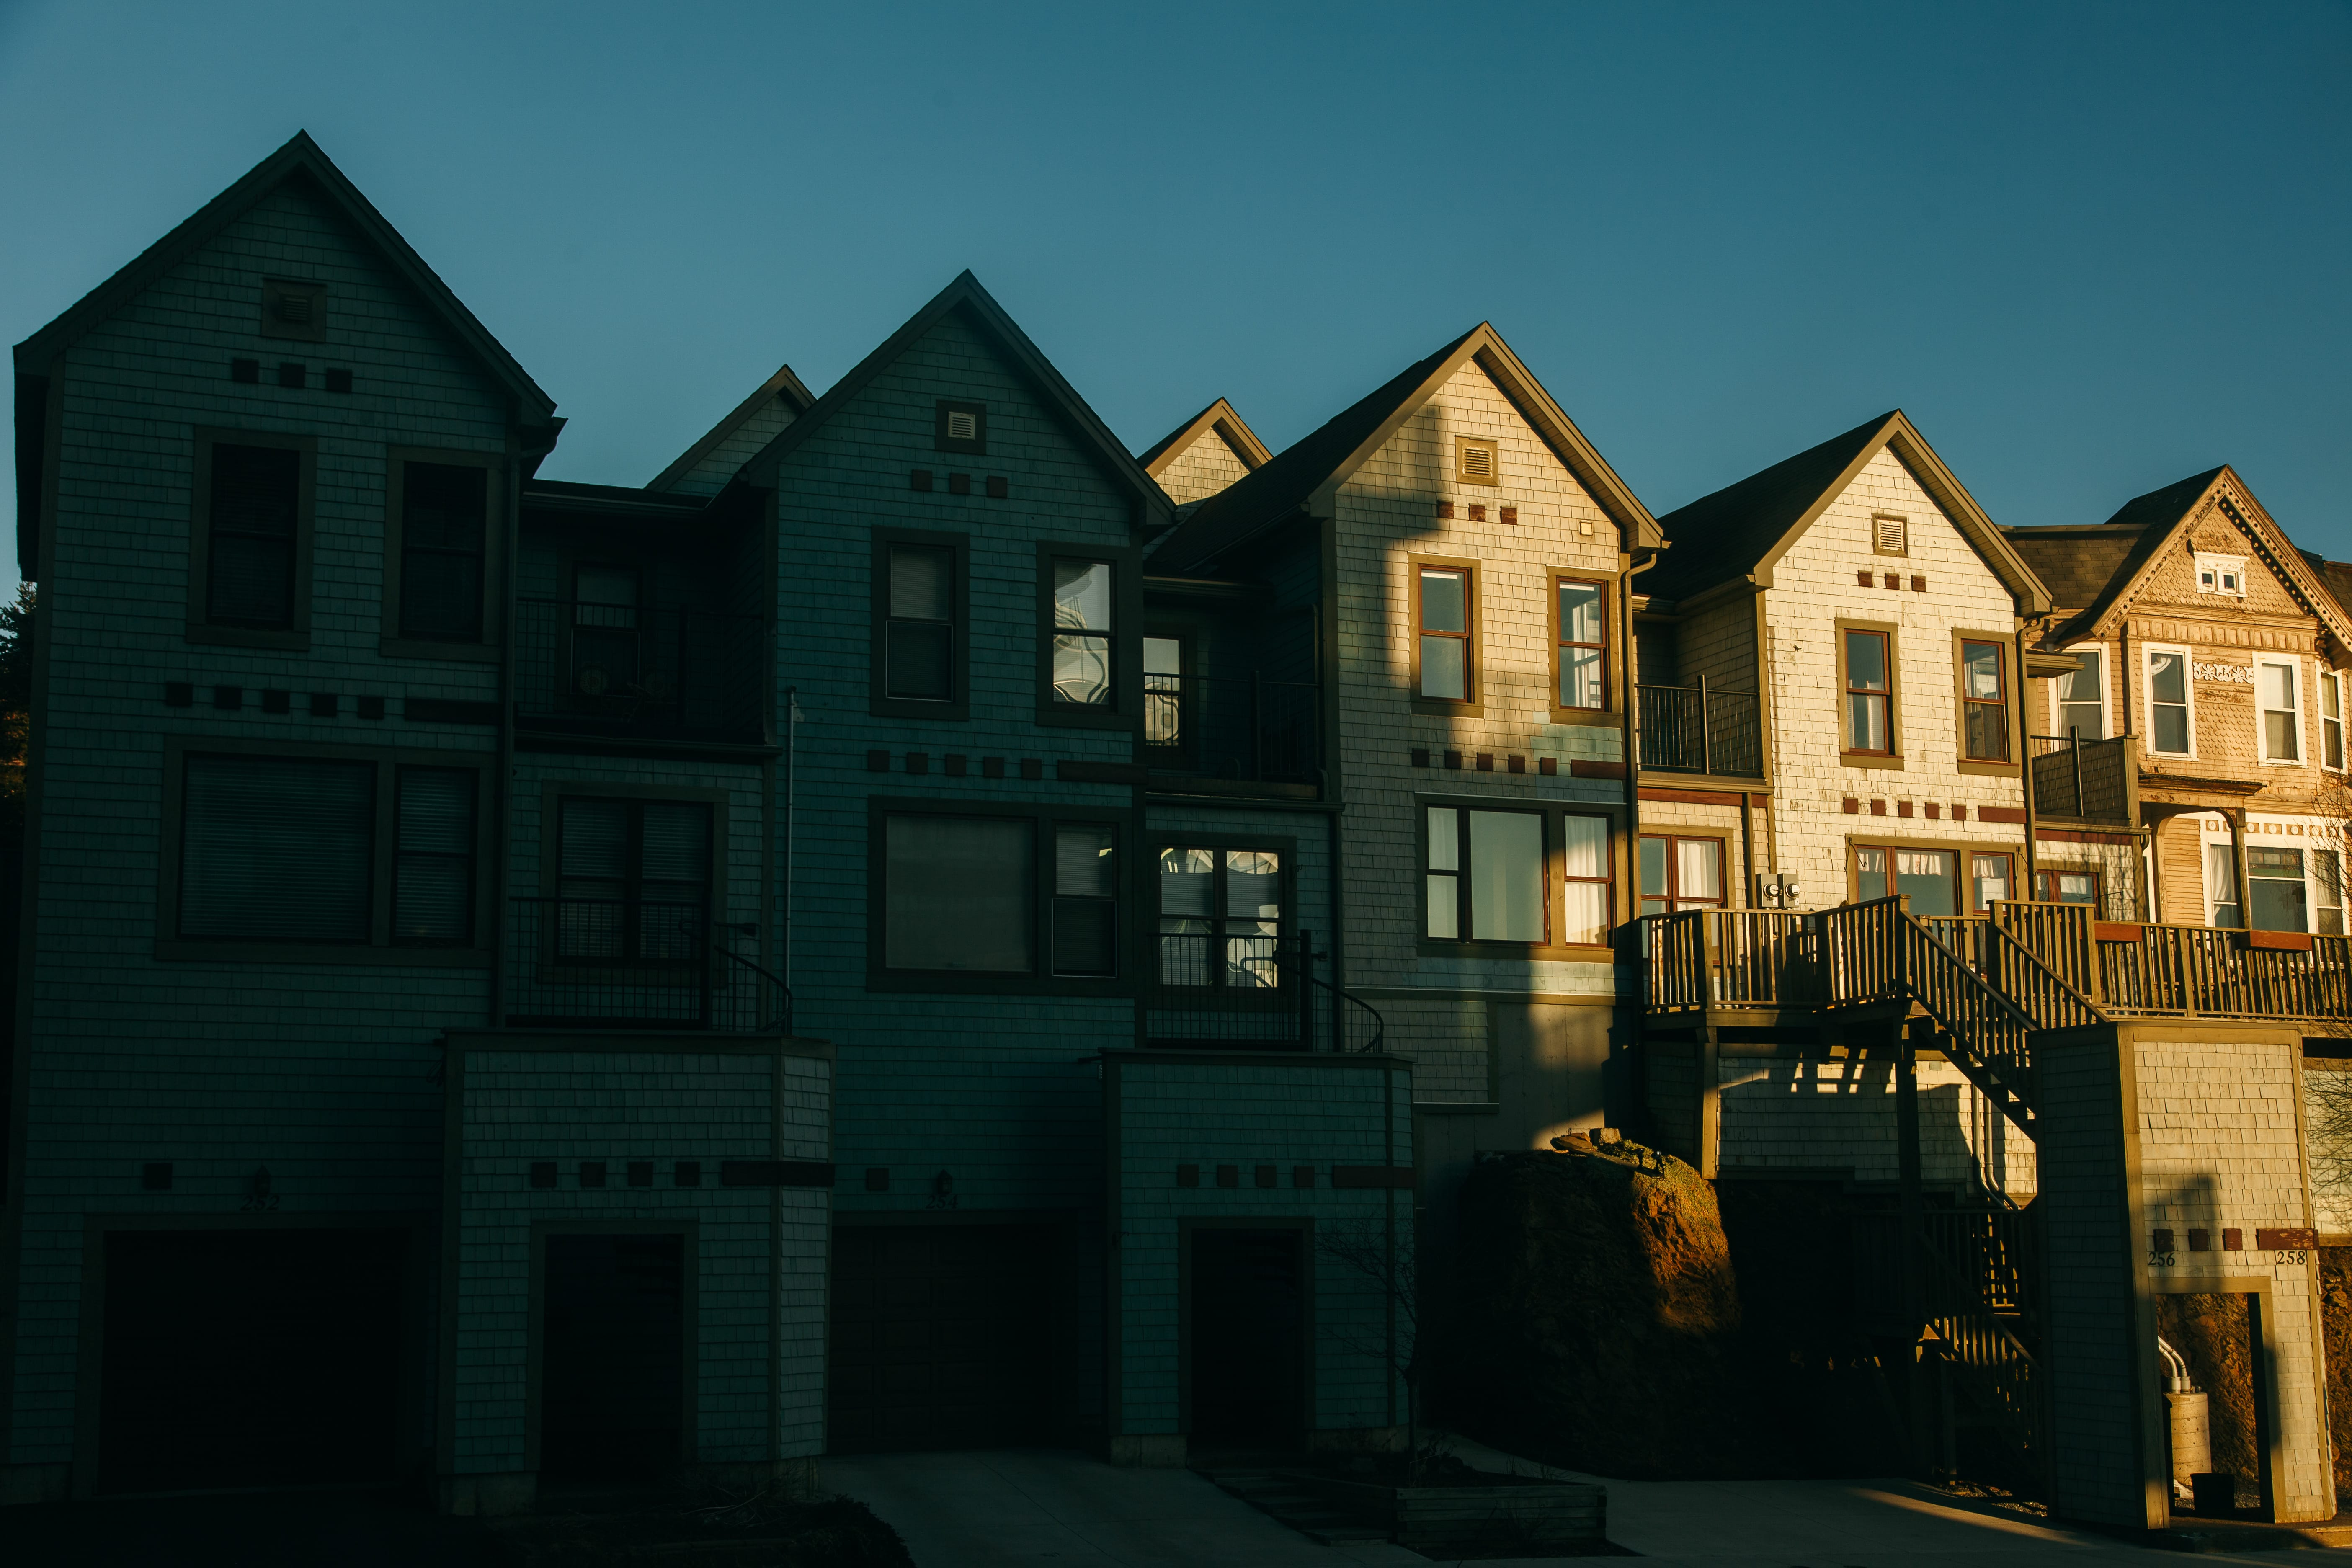 A photograph depicting Prince William Street Homes in Shadows